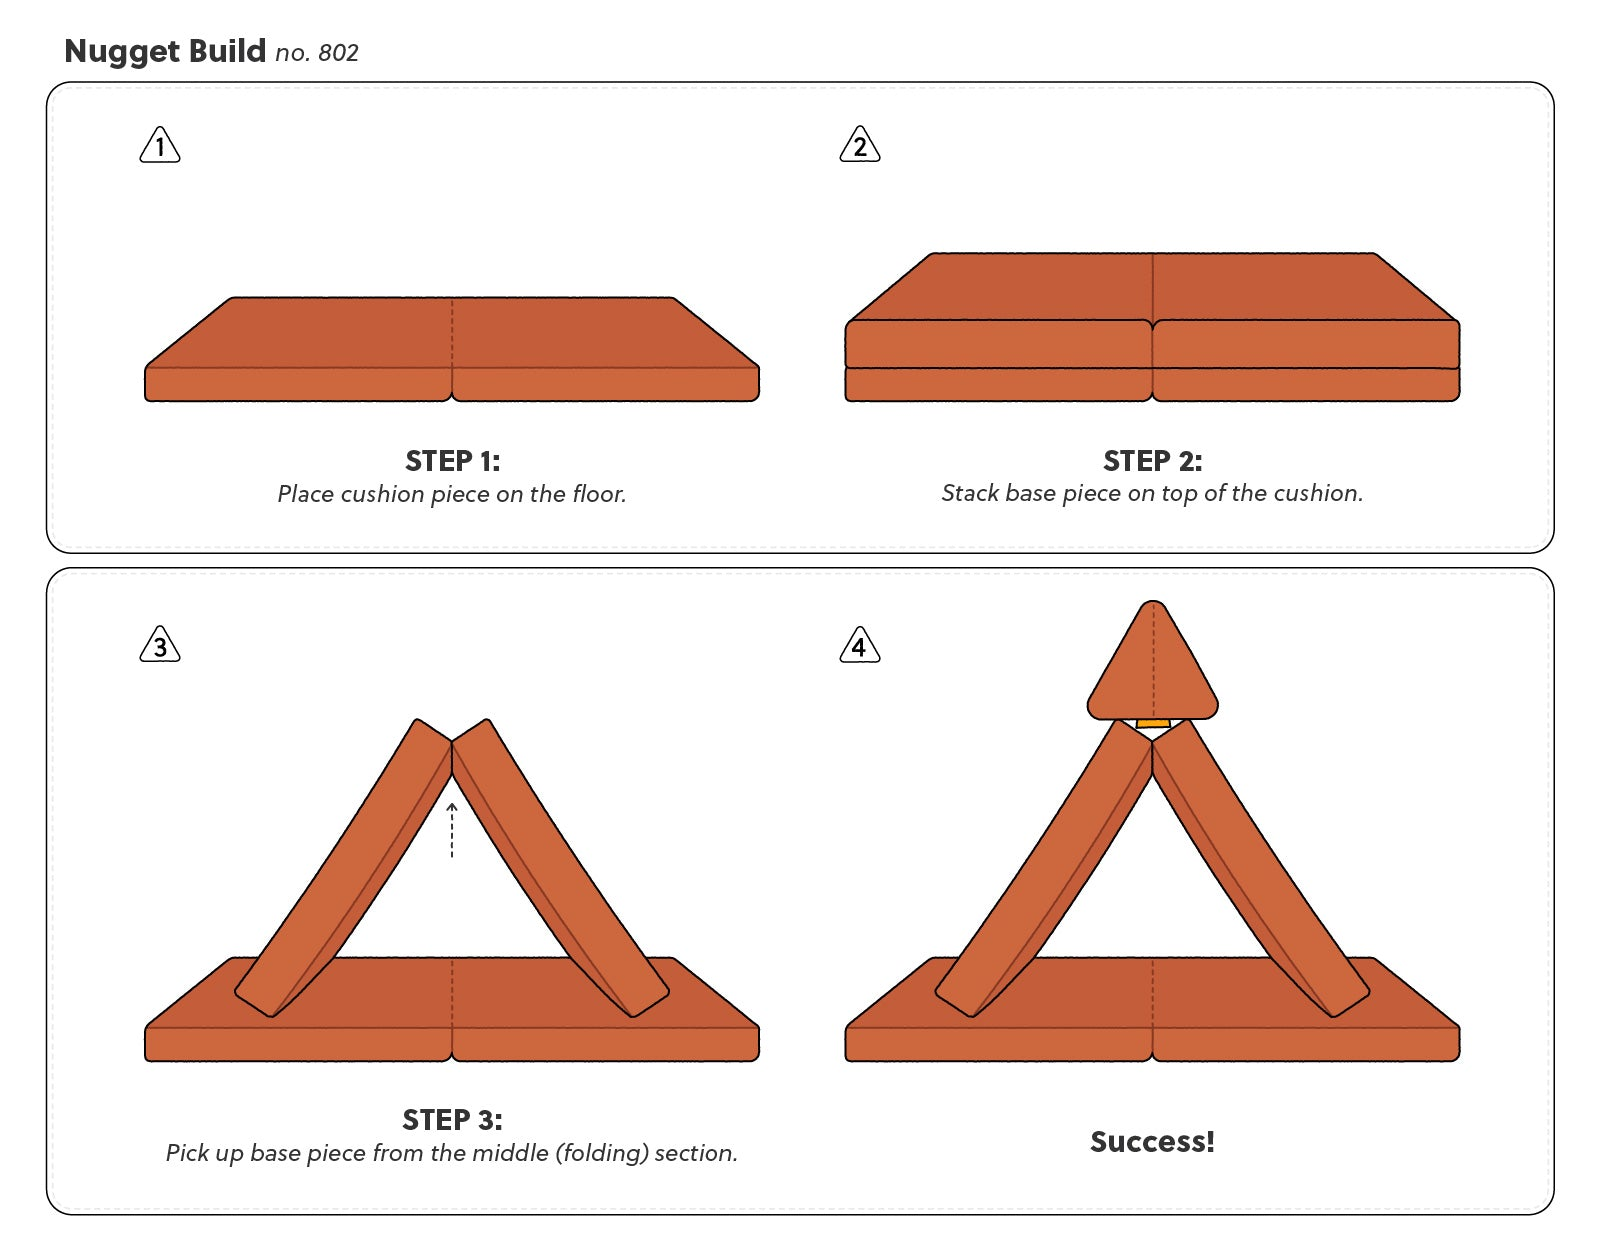 Step by step guide for how to make Nugget Build no. 802, a triangle fort with one pillow on top